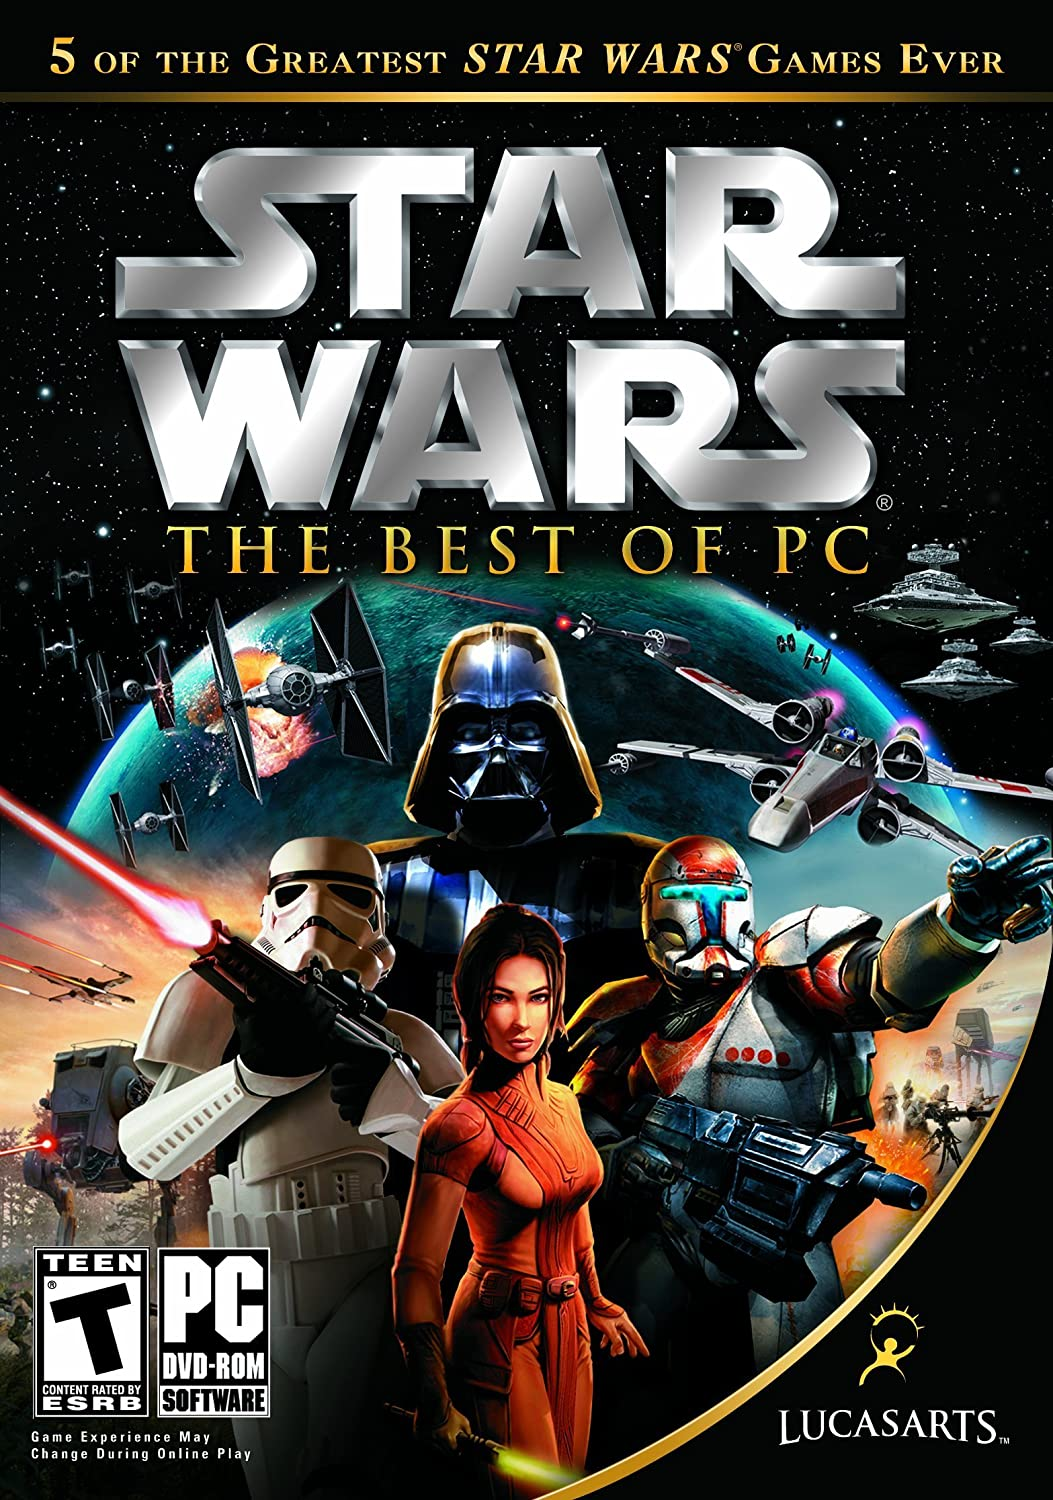 Star Wars The Best of PC Empire at War Knights of the Old